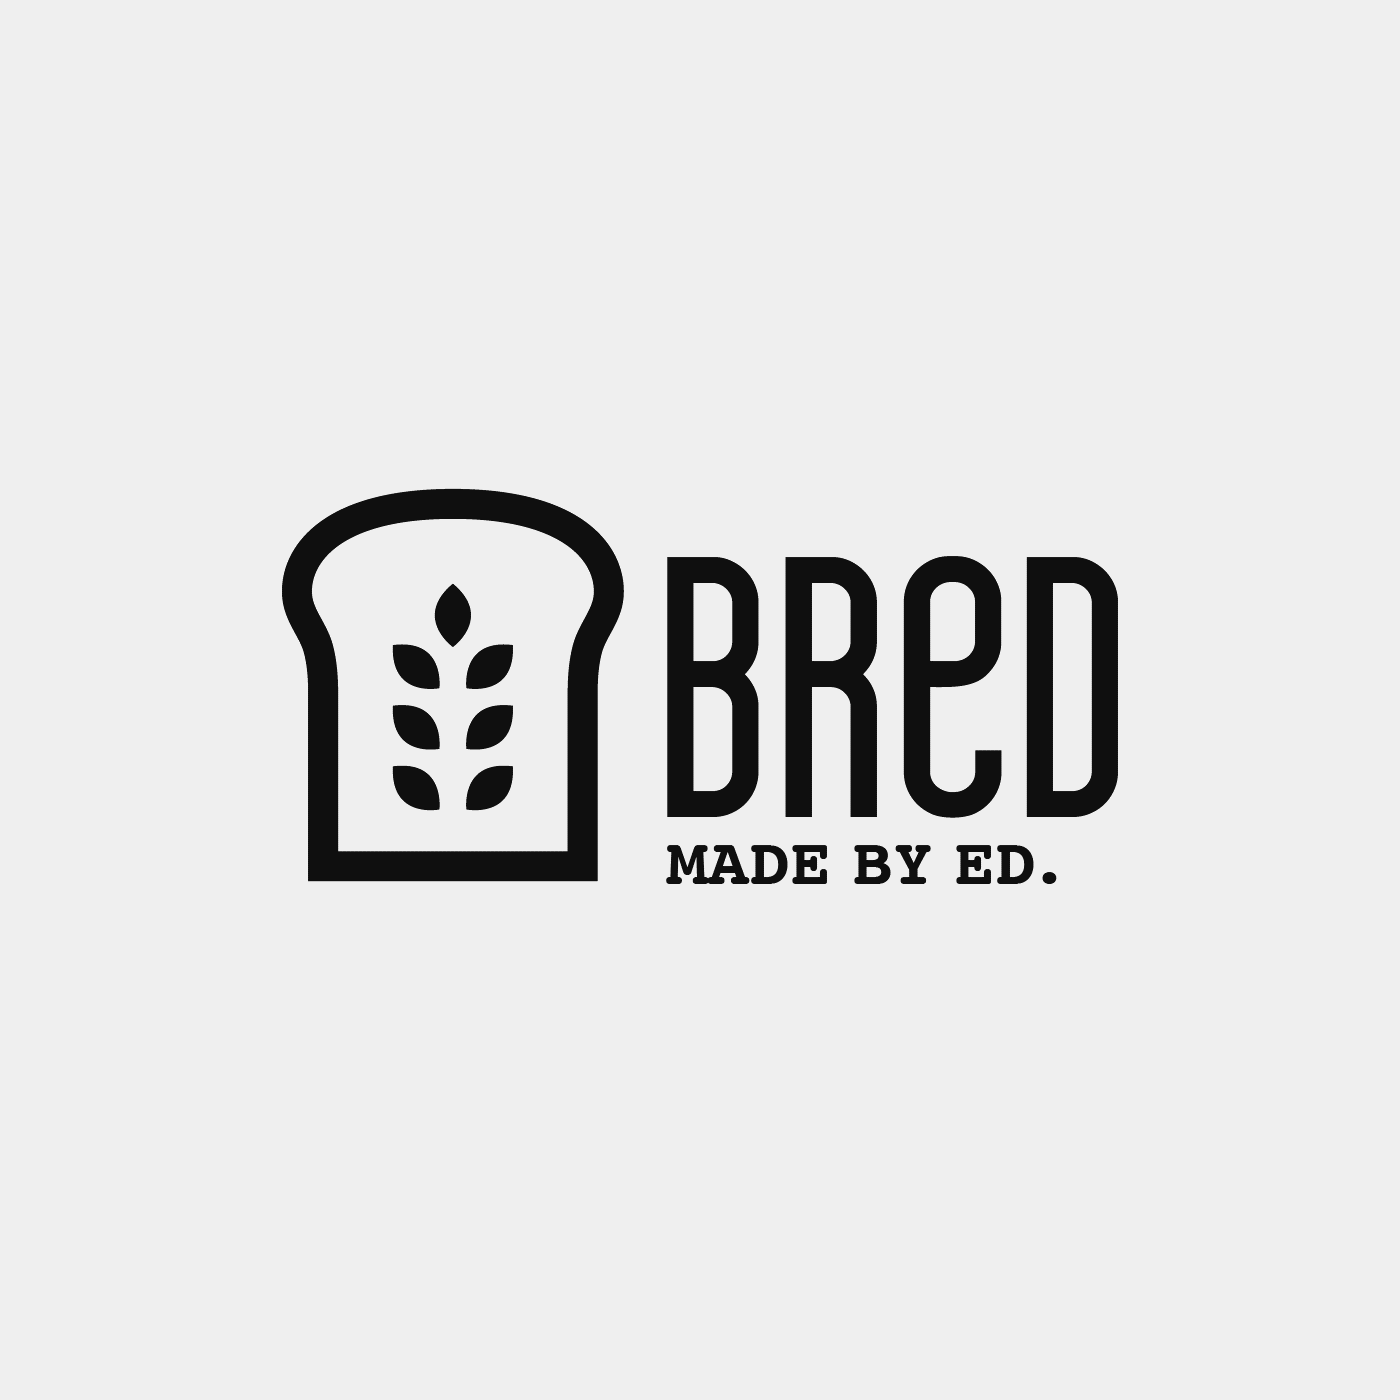 Black and white icon of a slice of bread with wheat leaves at its centre. The loco also reads Bred - Made by Ed